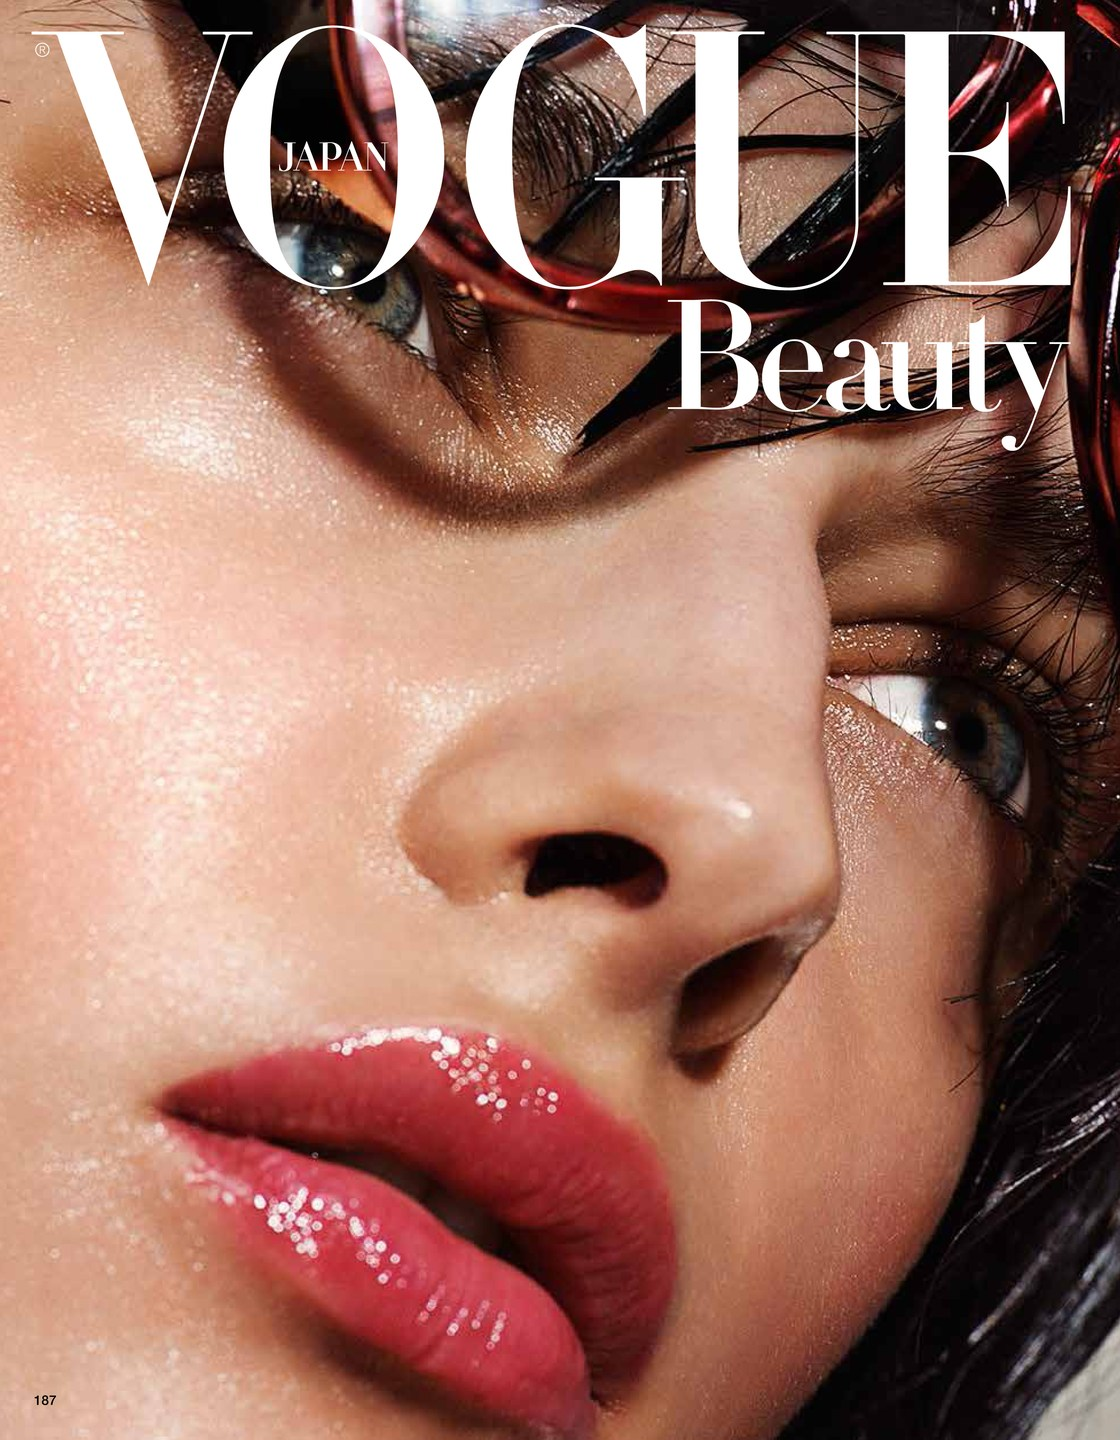 Daga Ziober VOGUE JAPAN BEAUTY 01